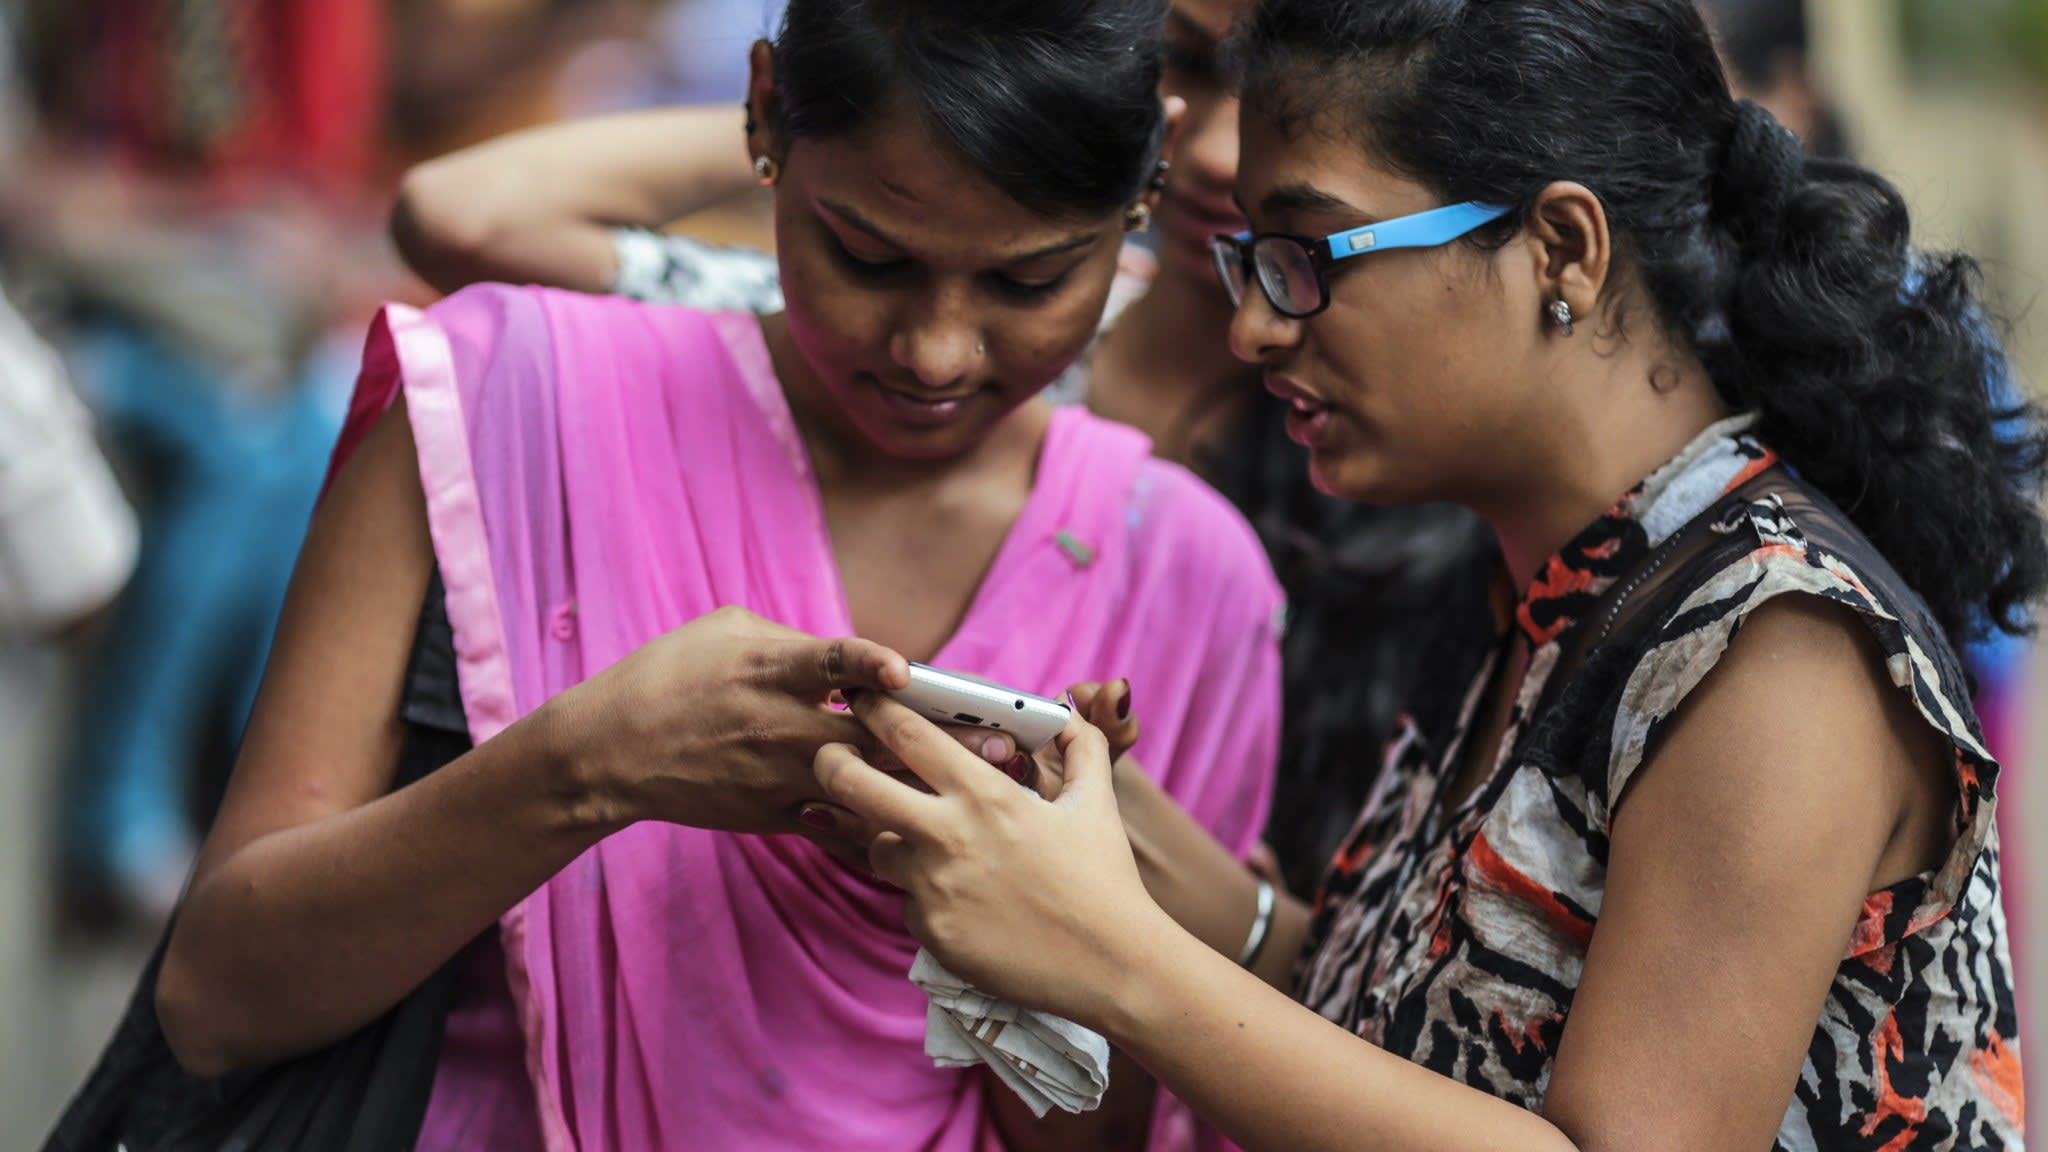 WhatsApp's India success spurs push into mobile payments | Financial Times